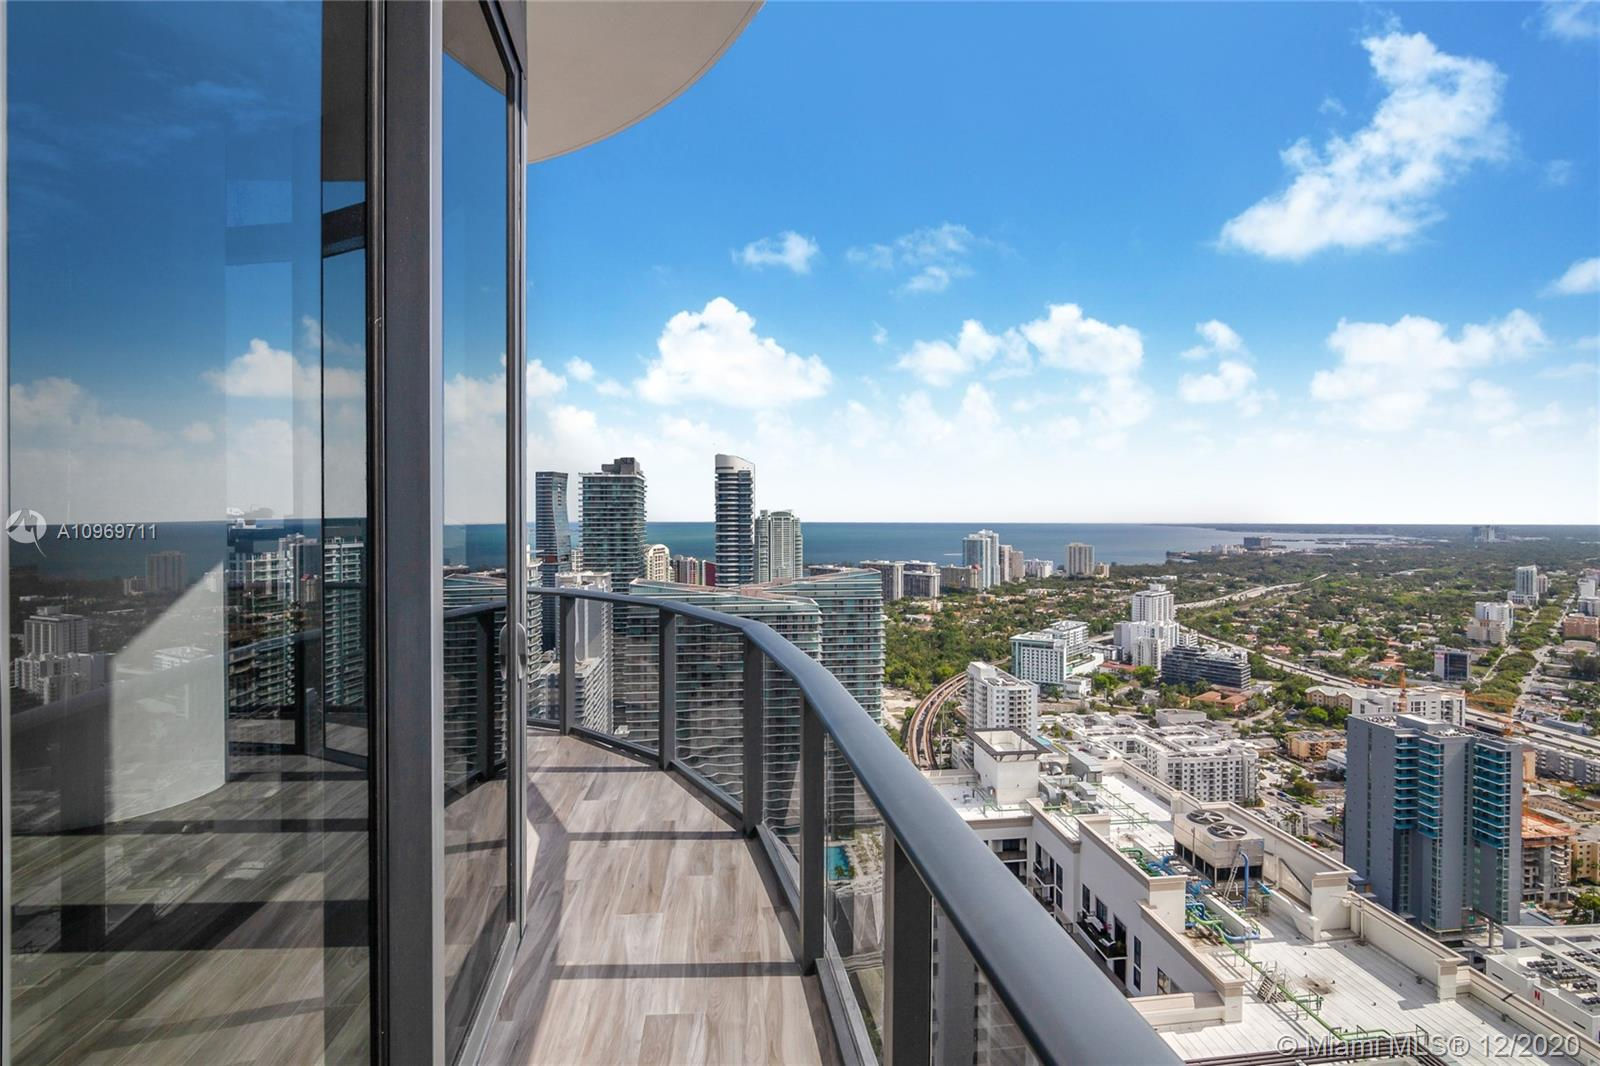 Best 4-bed Penthouse value in Brickell! Stunning top floor/upper level 4bed/4bath 2,366 sq. ft. luxury Penthouse at Brickell Heights. Only unit with double door entry. Large wraparound balcony with 14 Ft High Ceiling in living area, floor to ceiling glass, upgraded floors, and spectacular open city and south facing bay views. 5-star amenities include on site Equinox fitness, billiards room, rooftop pool, business center. modern and sleek lobby, and a 6,000 sq. ft. clubhouse. This unit will not disappoint!